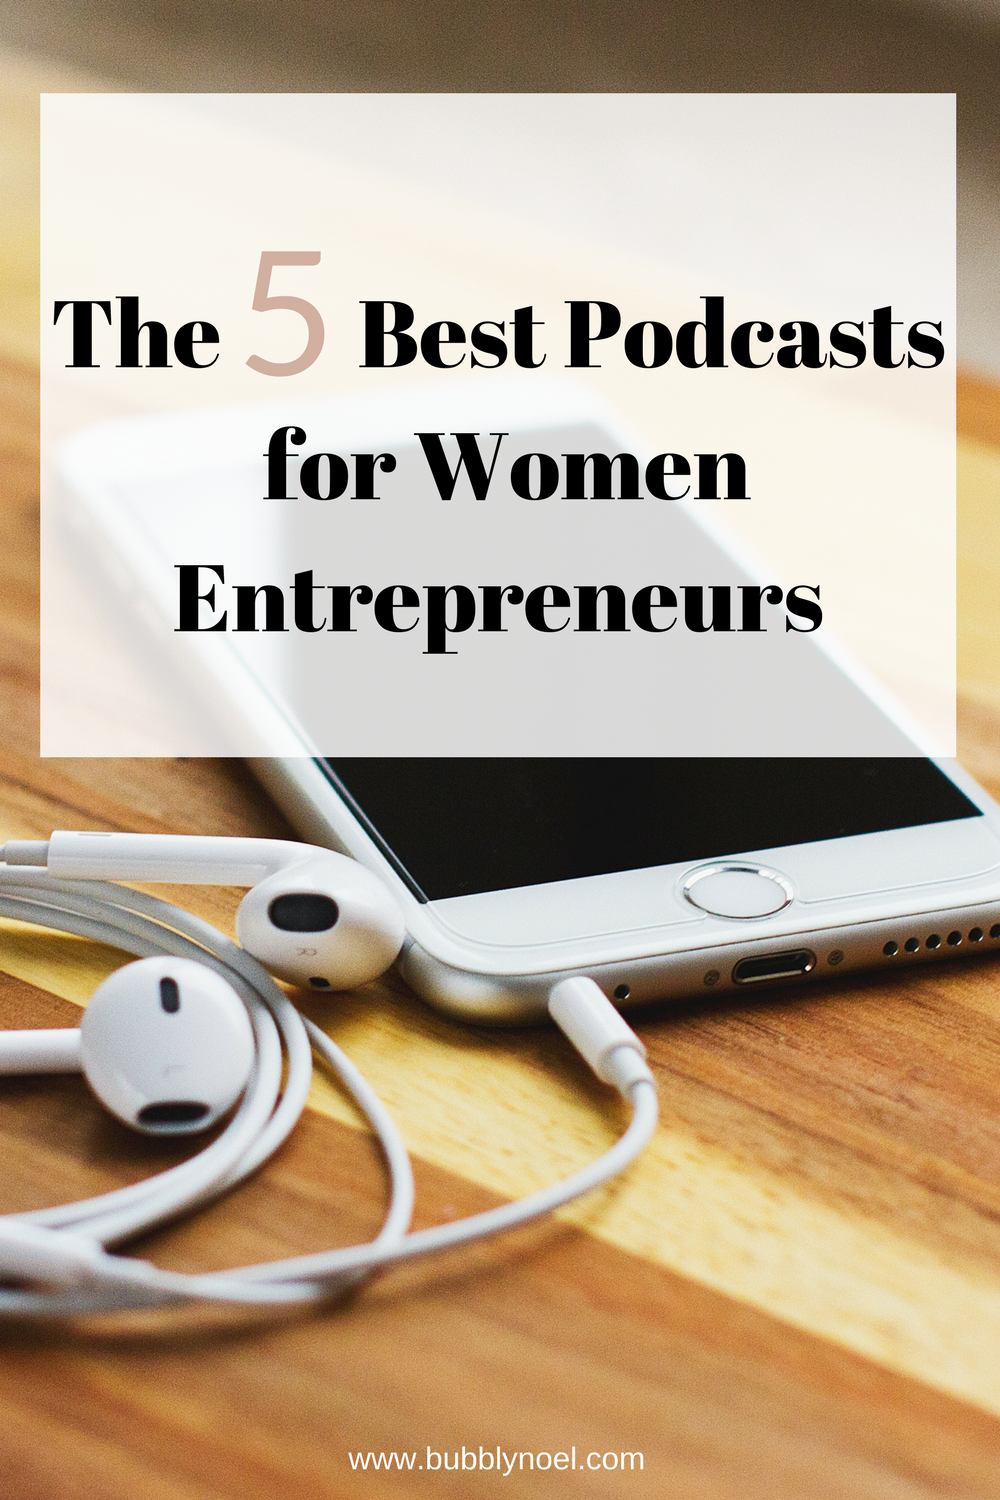 The Best Podcasts for Women Entrepreneurs (1).png